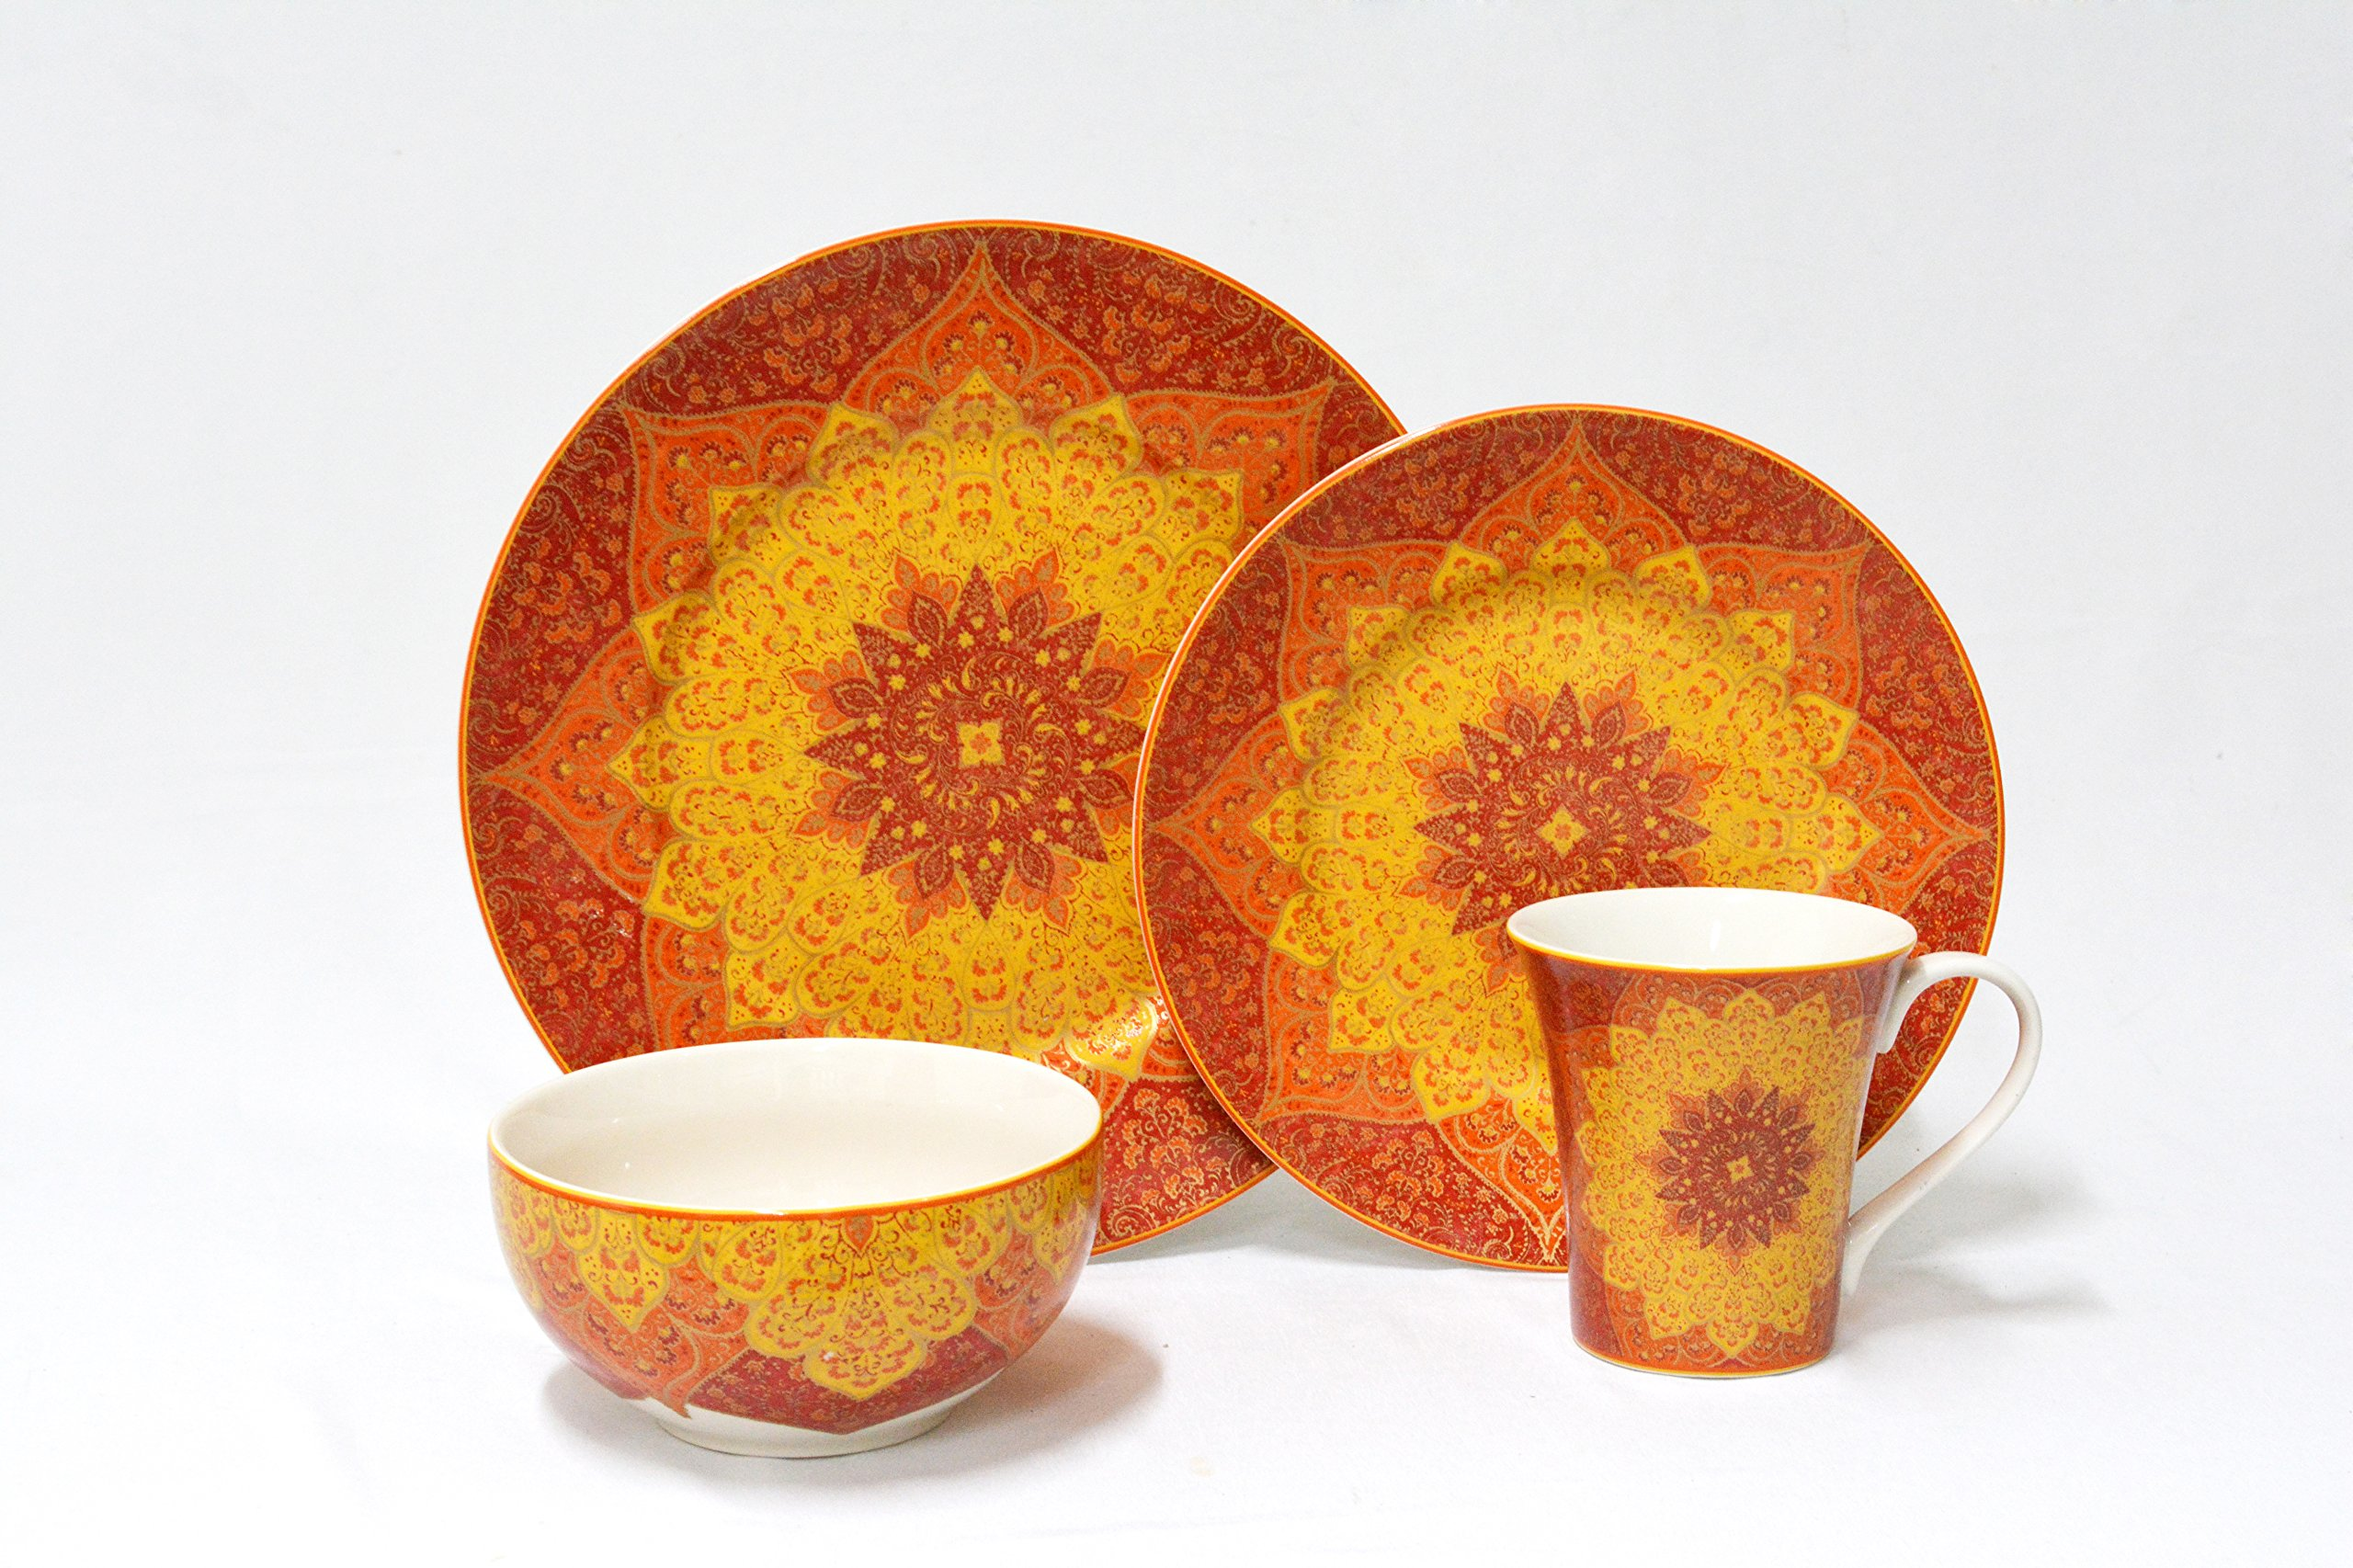 222 Fifth 3002RD801A1B71 Kashan 16 Piece Dinnerware Set, Red by 222 Fifth (Image #1)